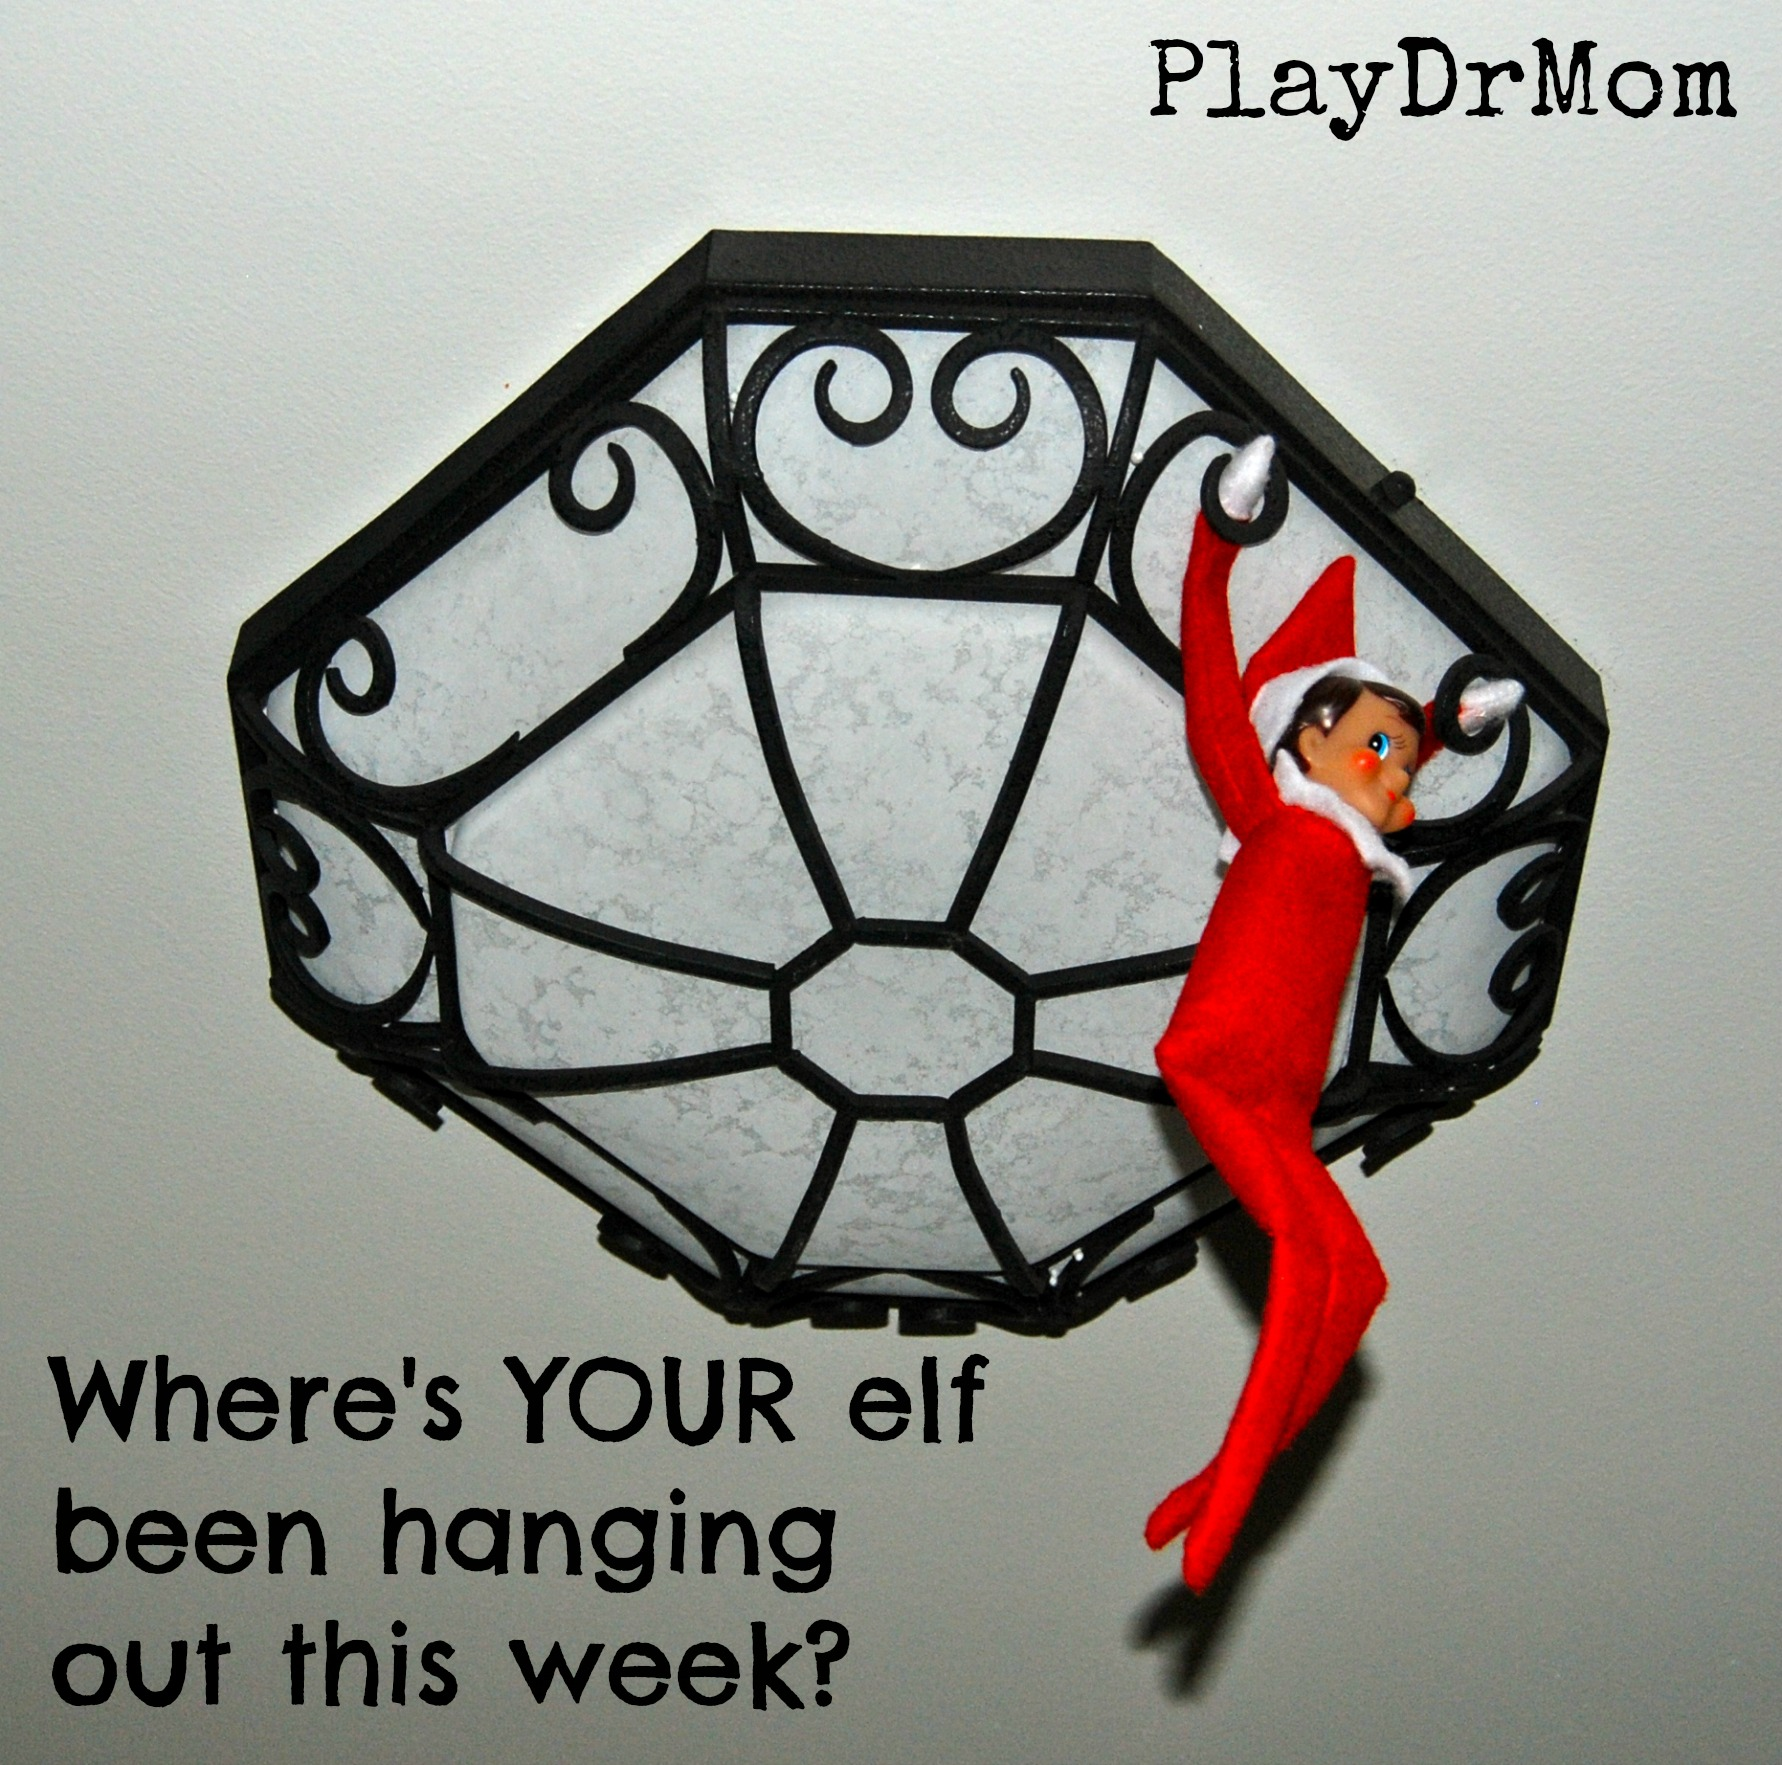 What's your Elf been up to?